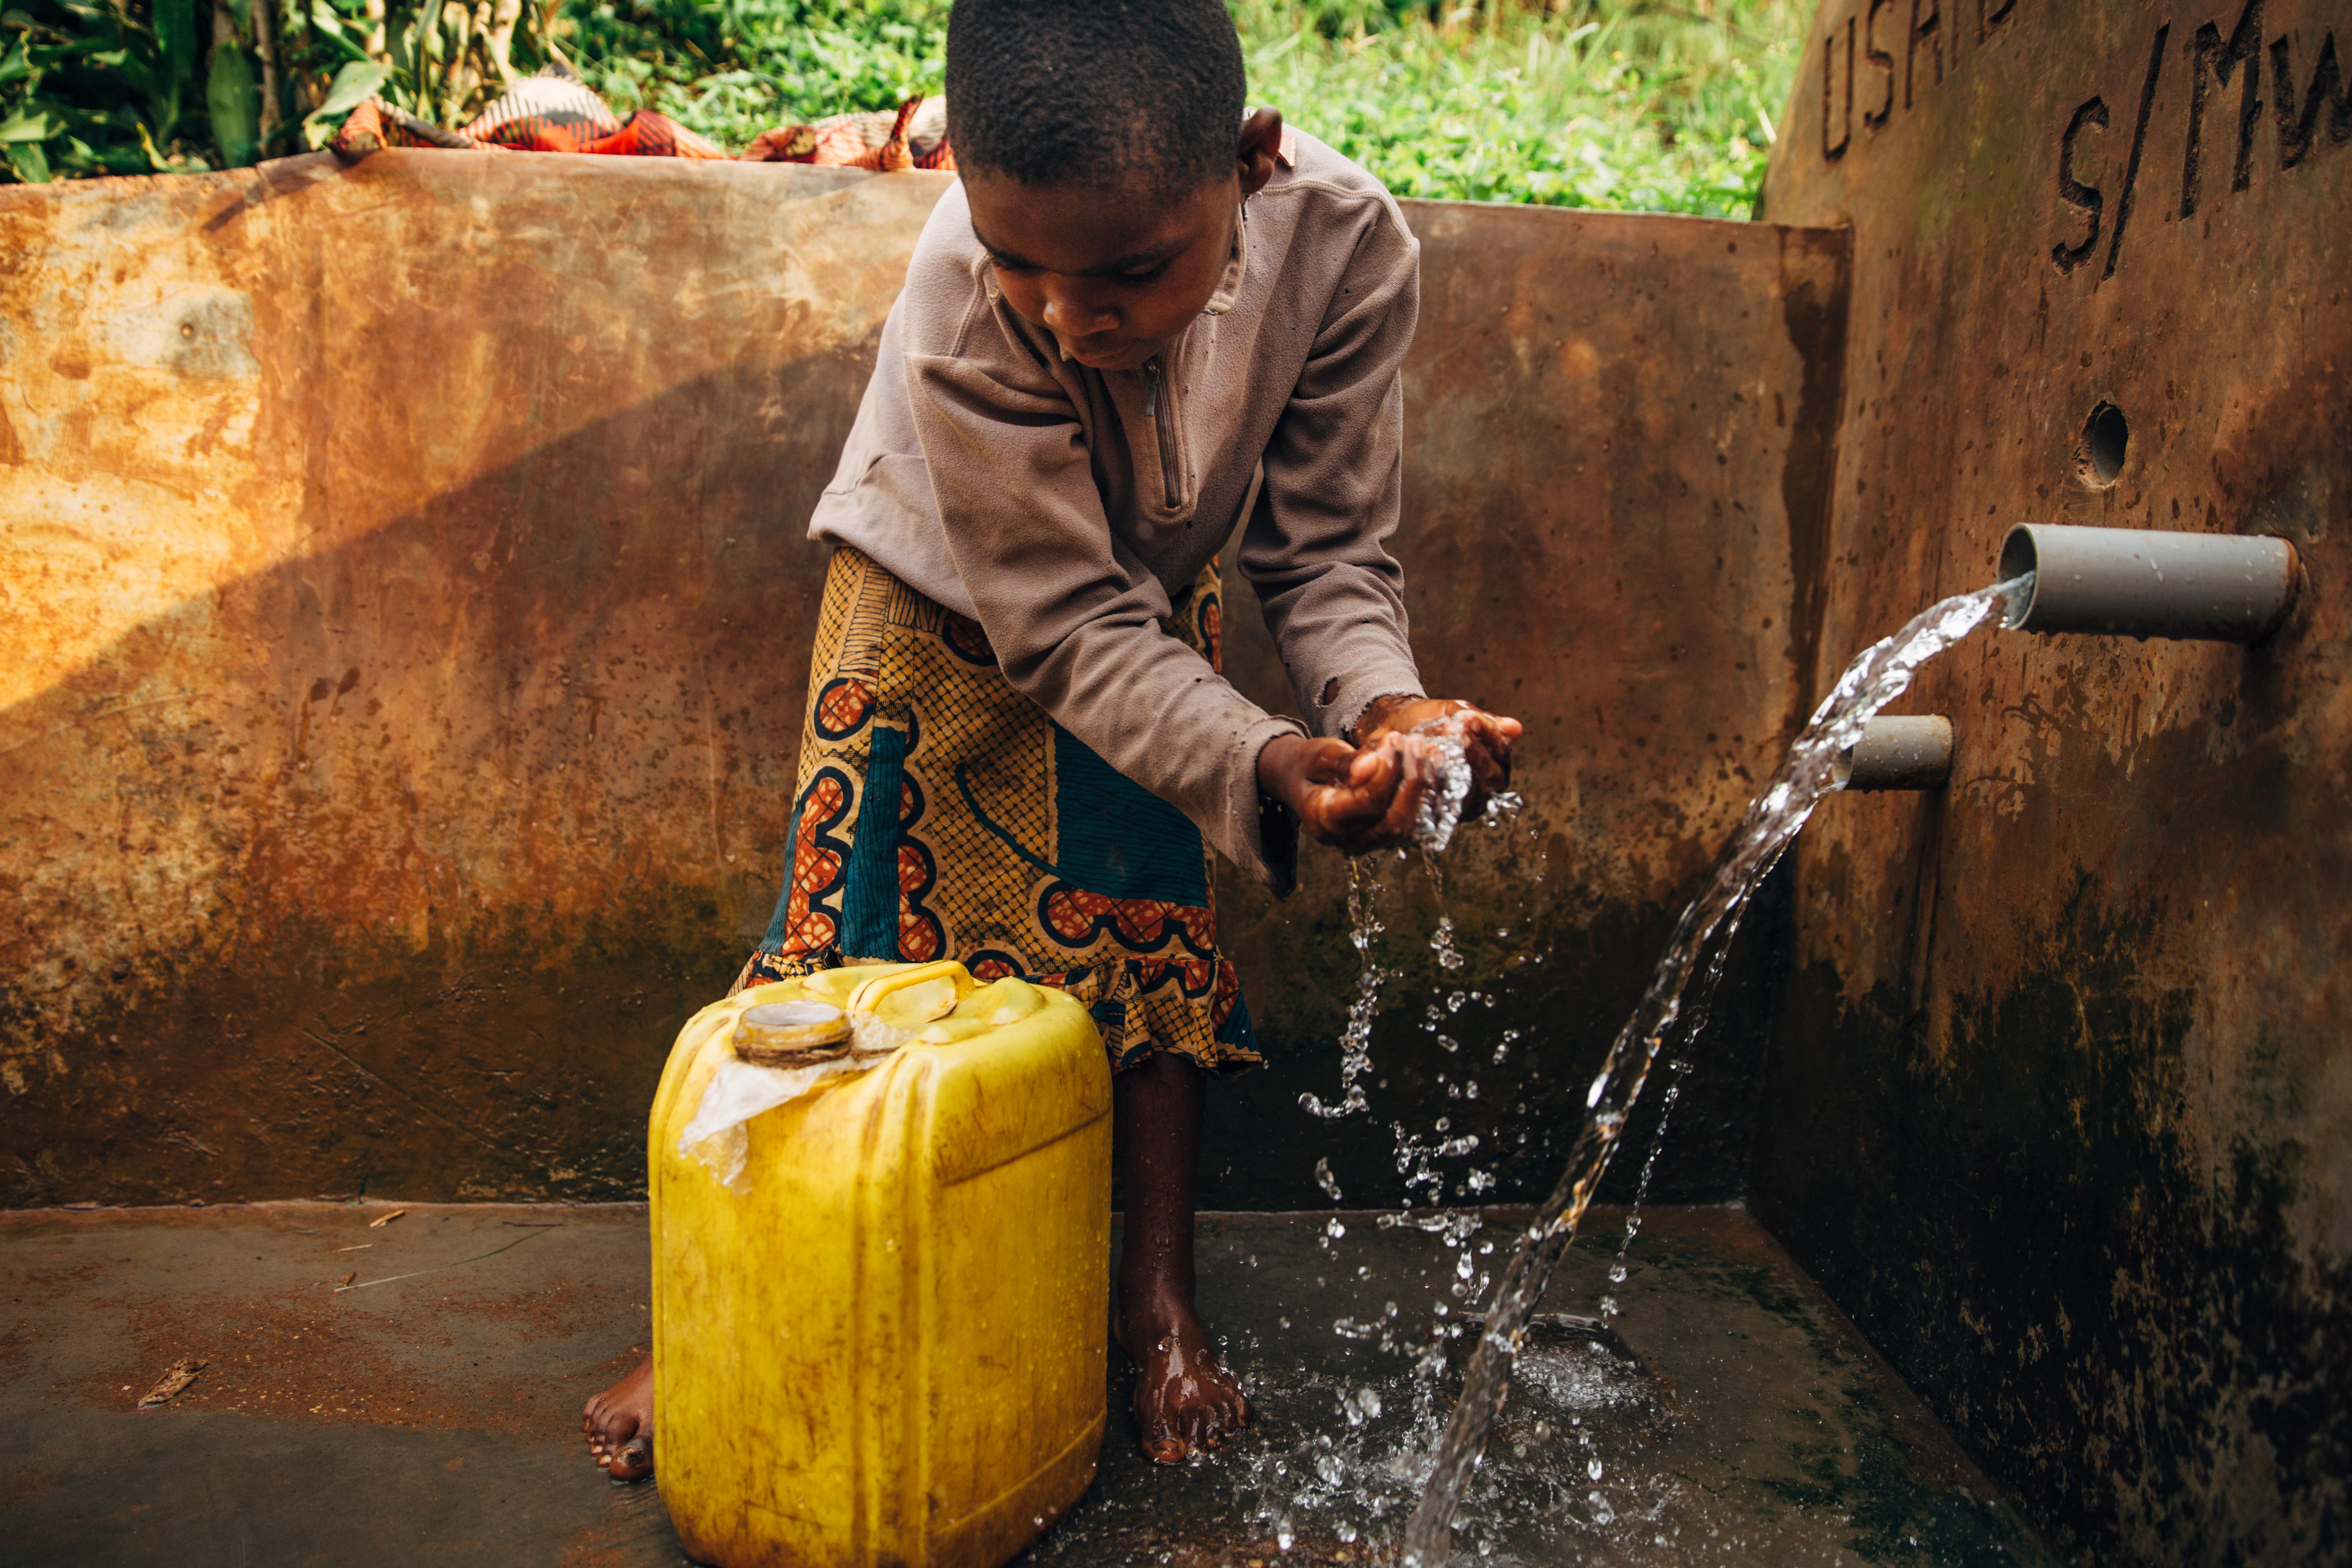 Working together to save children's lives through clean water - Part 1 Featured Image